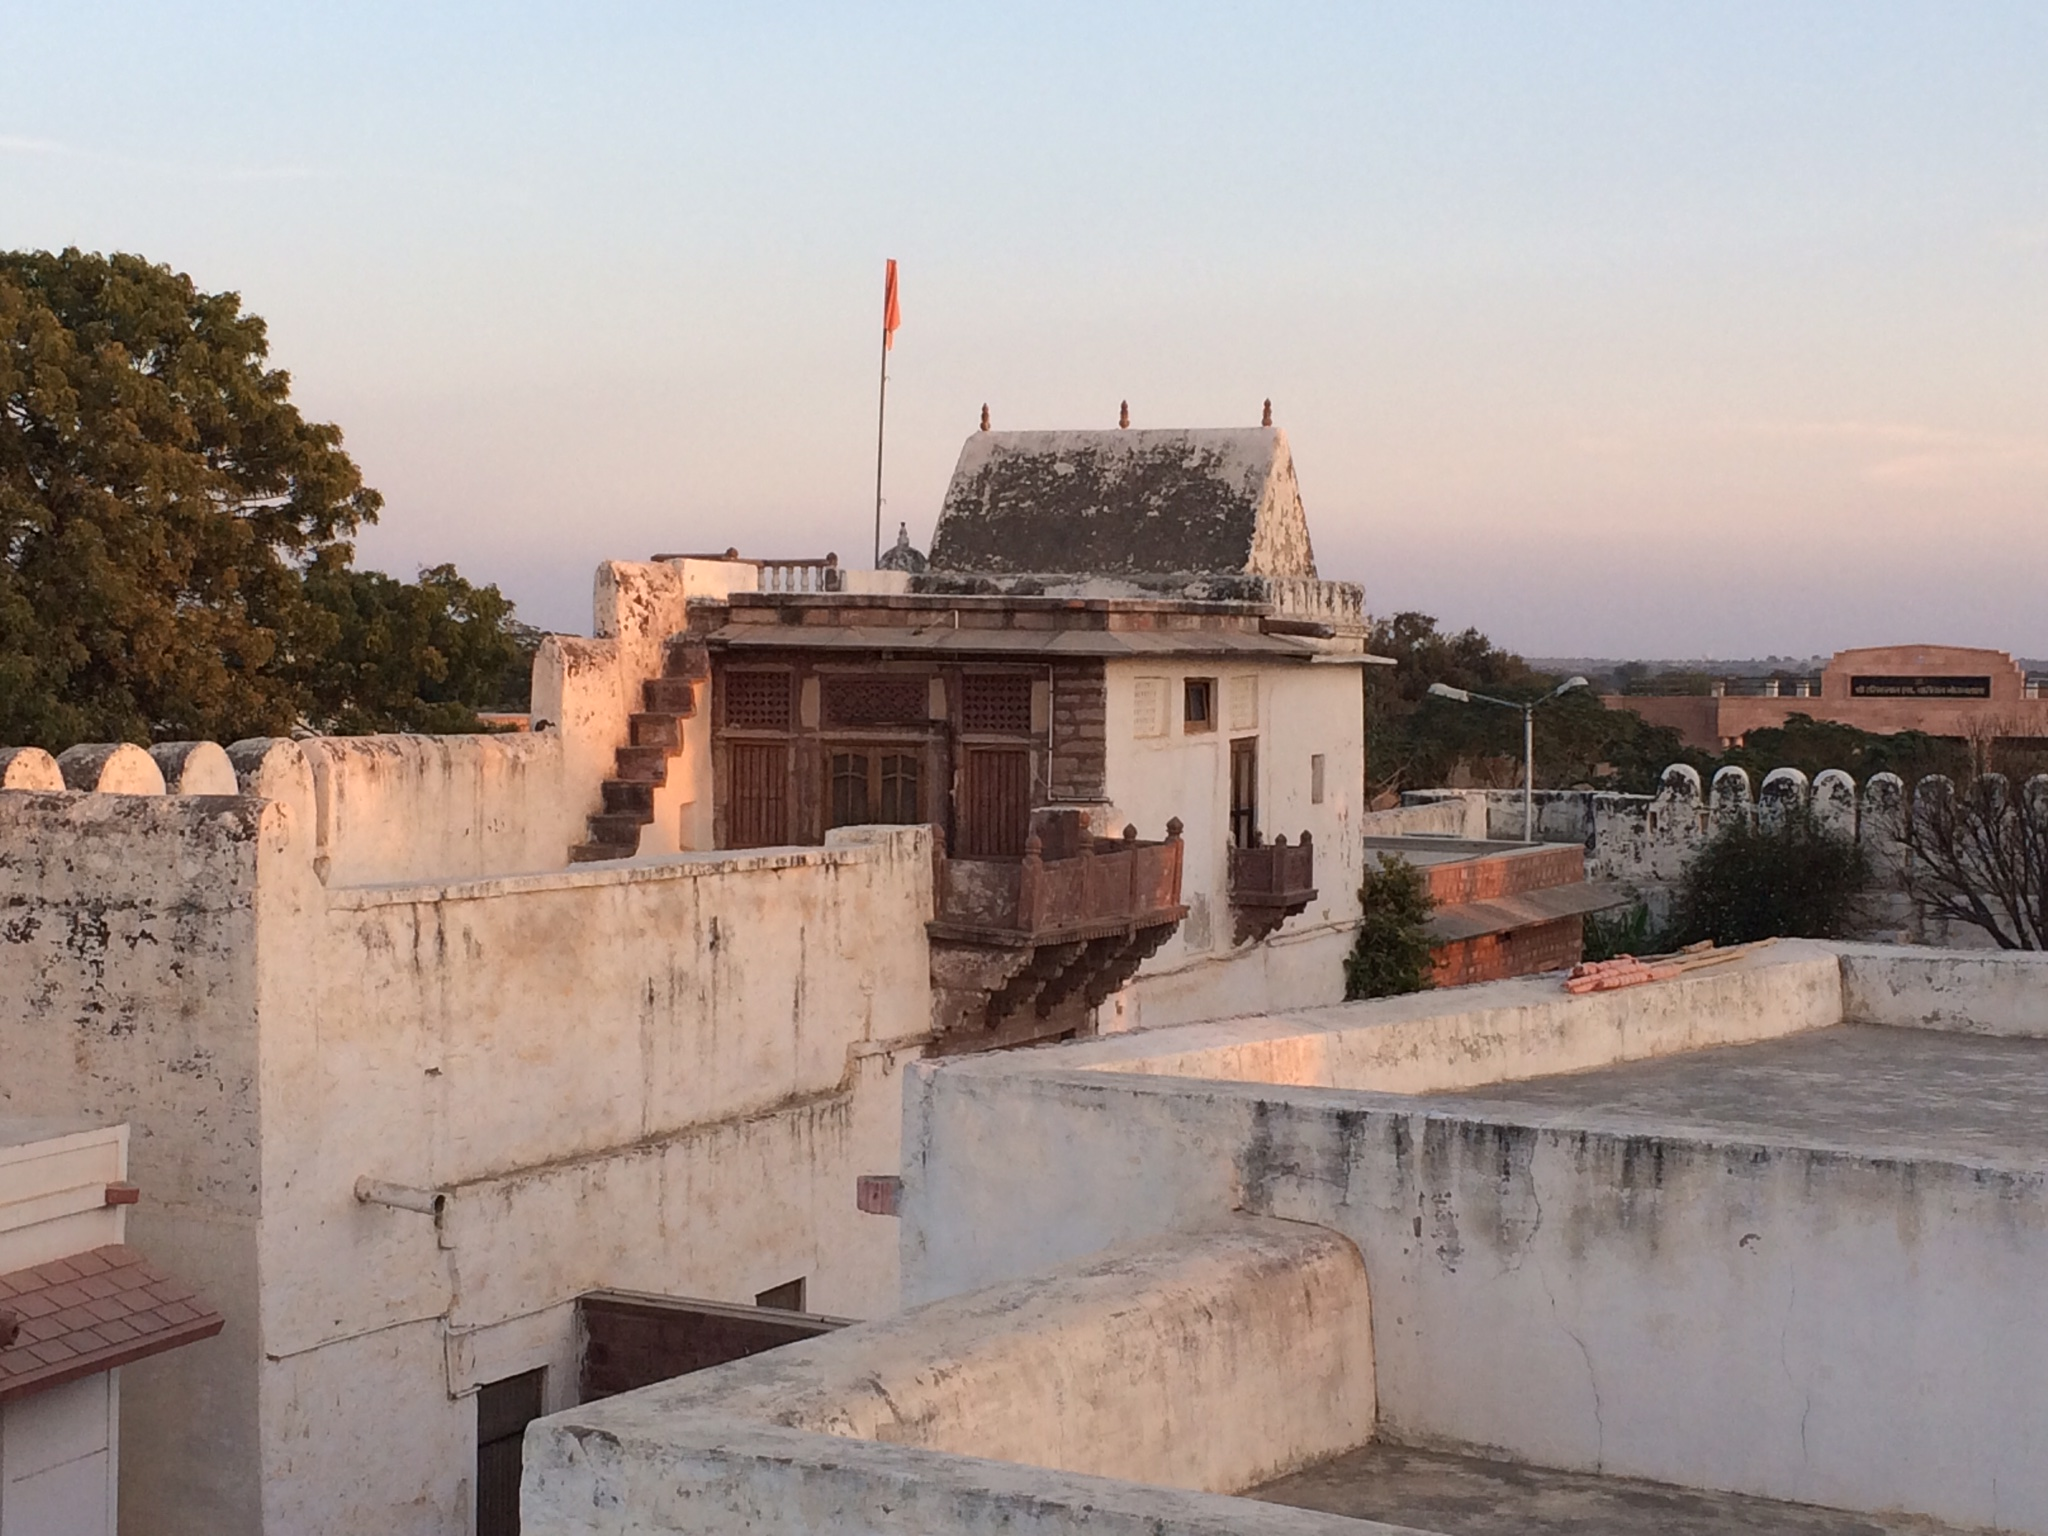 Inside the 500-year-old fort of Sri Jasnath Asan